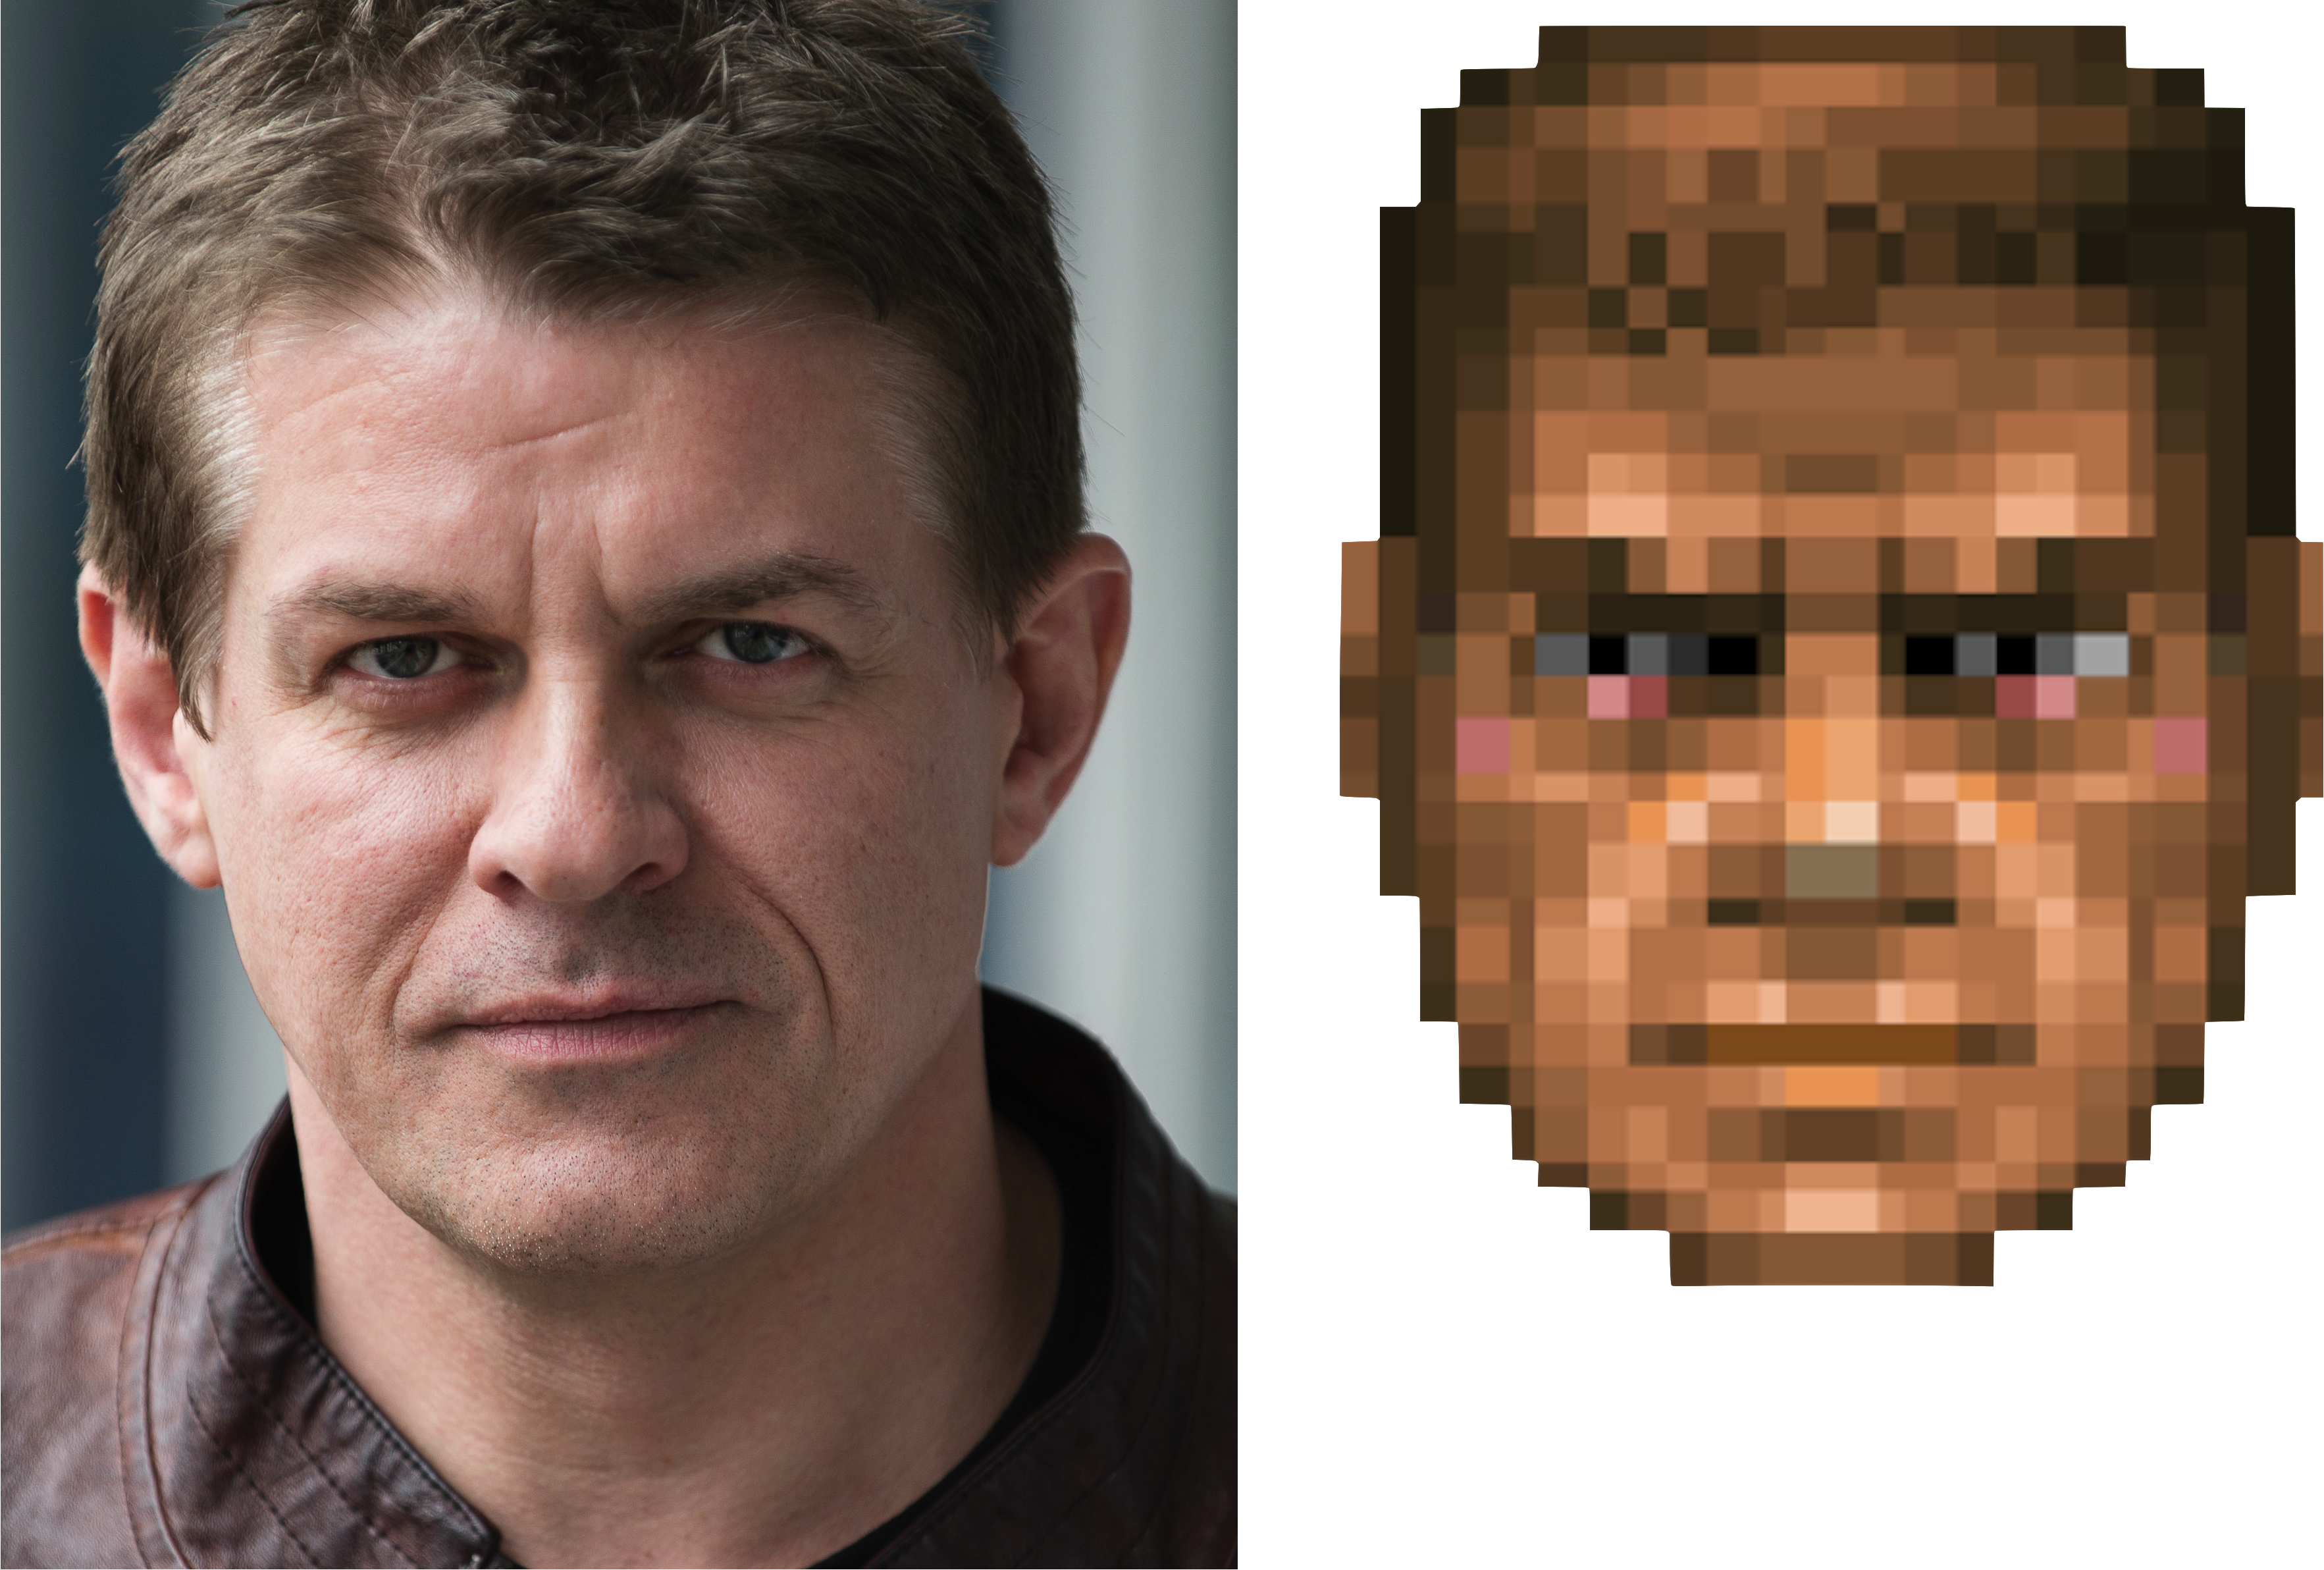 Jykale/I doubt that Amy or Nina will replace Doomguy in the 2019 Doom movie.